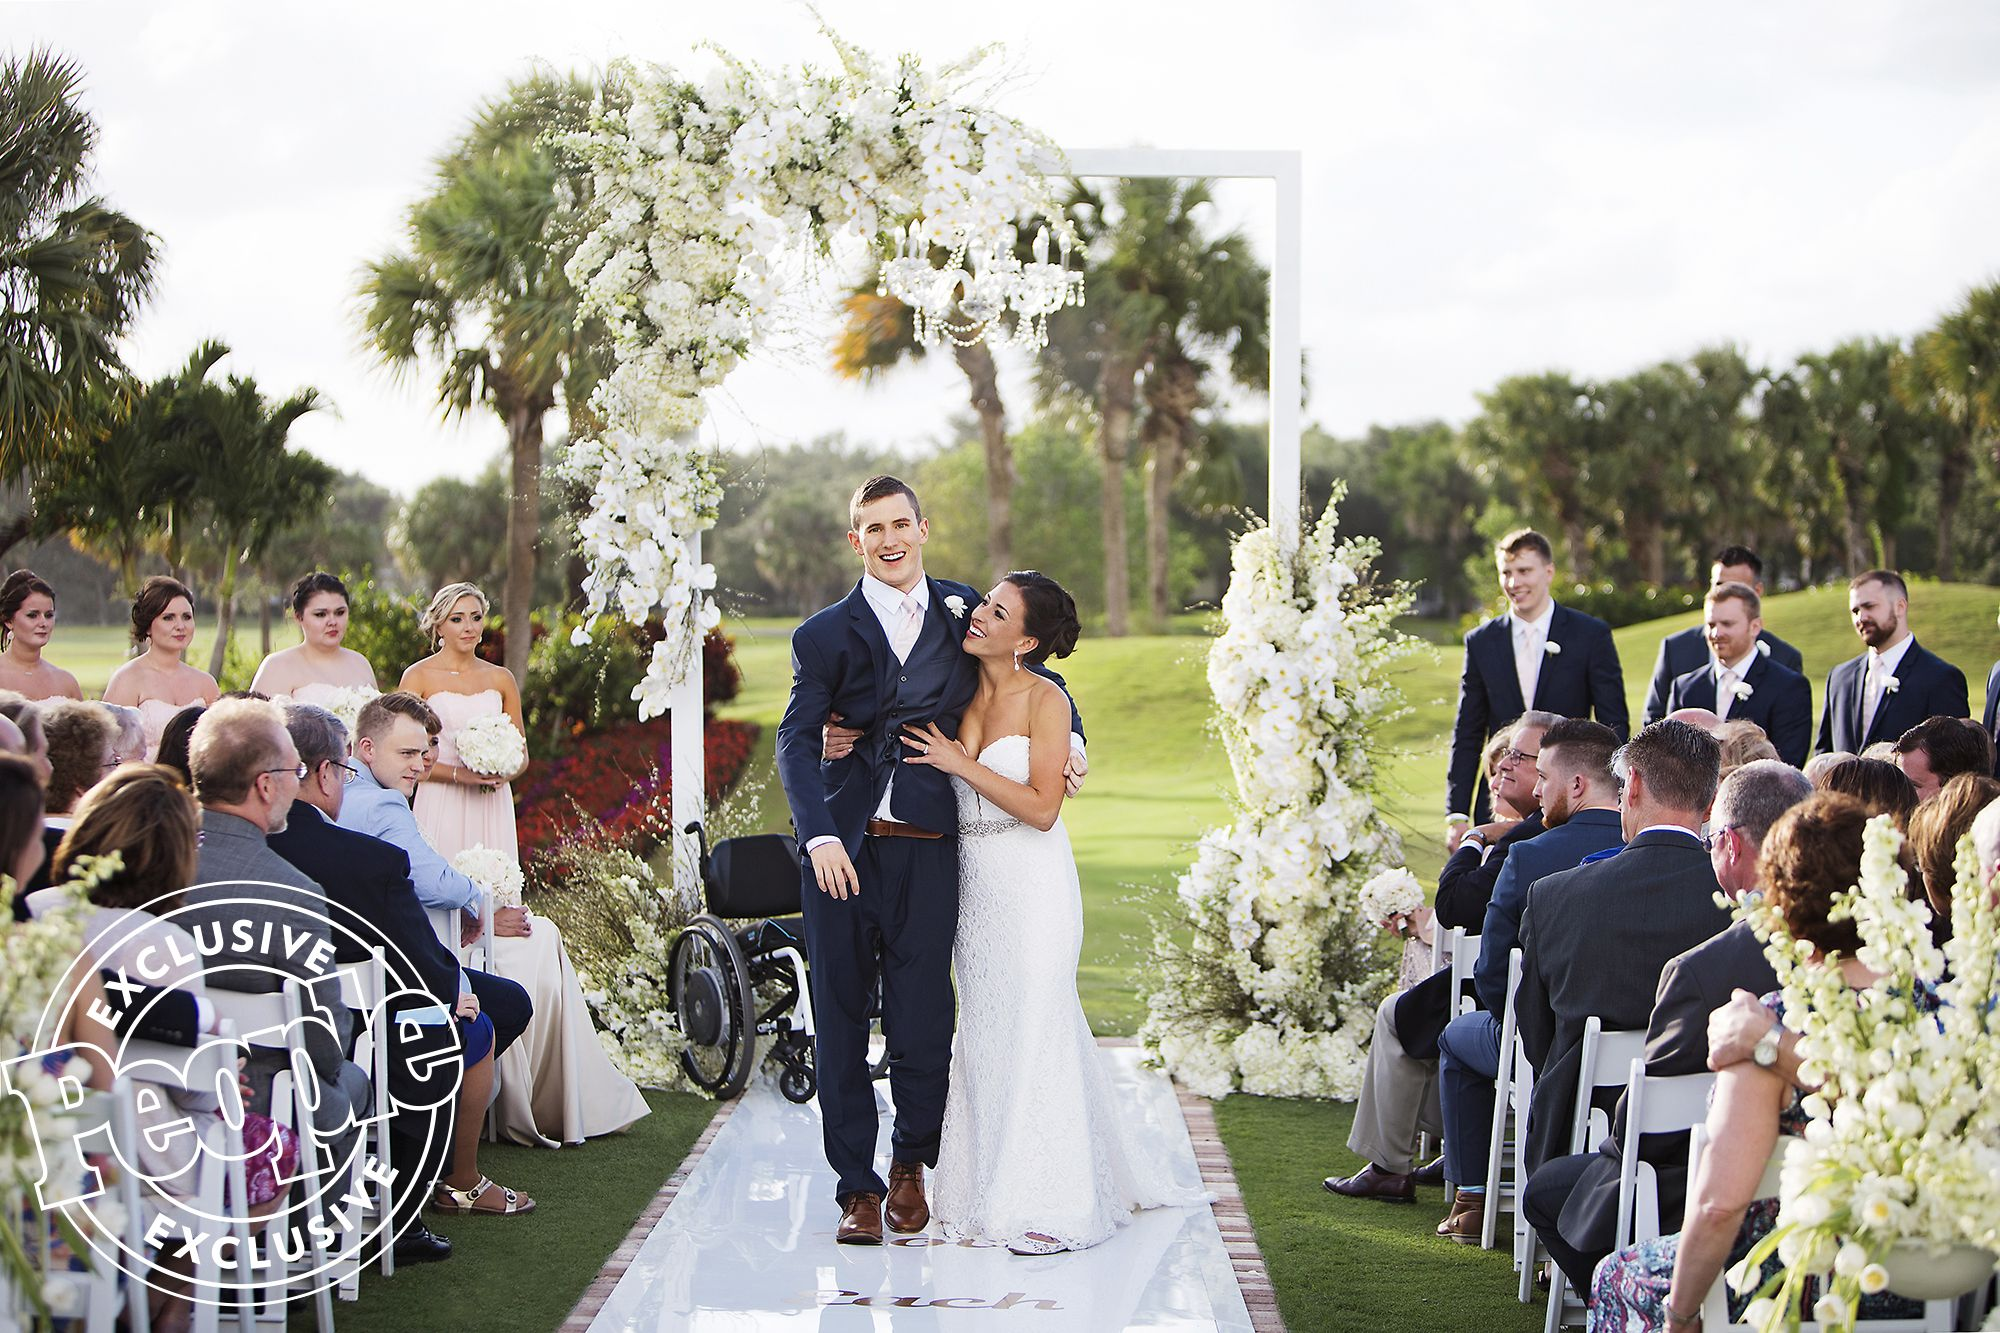 Watch Groom Paralyzed Playing Football Walks Down The Aisle The Accident Brought Me To Her Bride Wedding Wedding Video